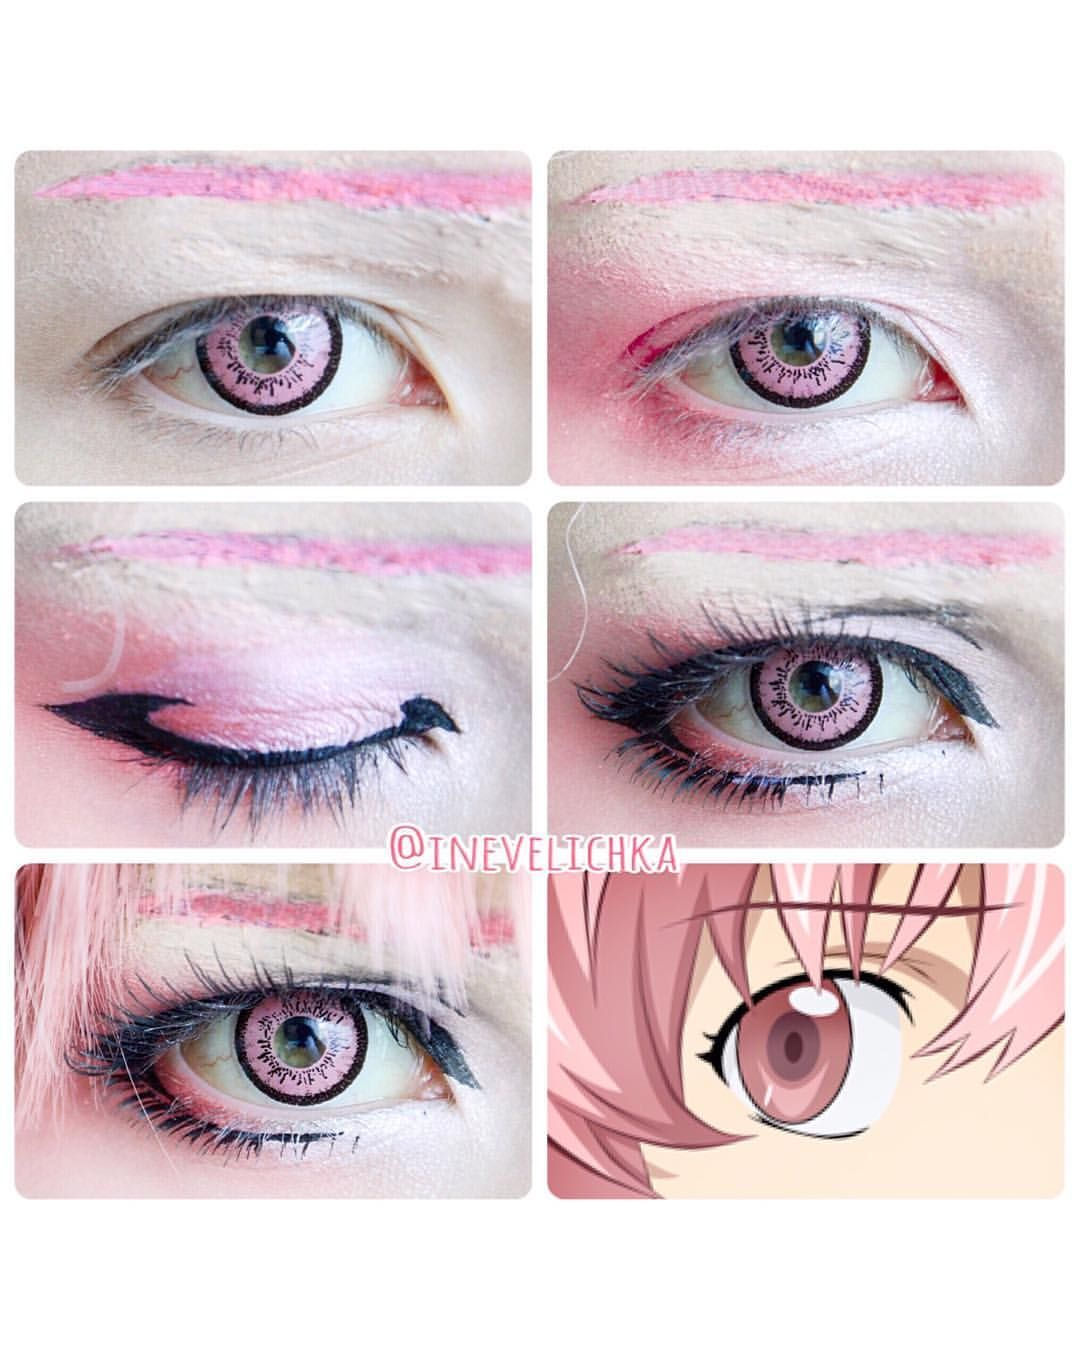 Pin By Melyssa Wei On Cosplay Makeup Anime Cosplay Makeup Cosplay